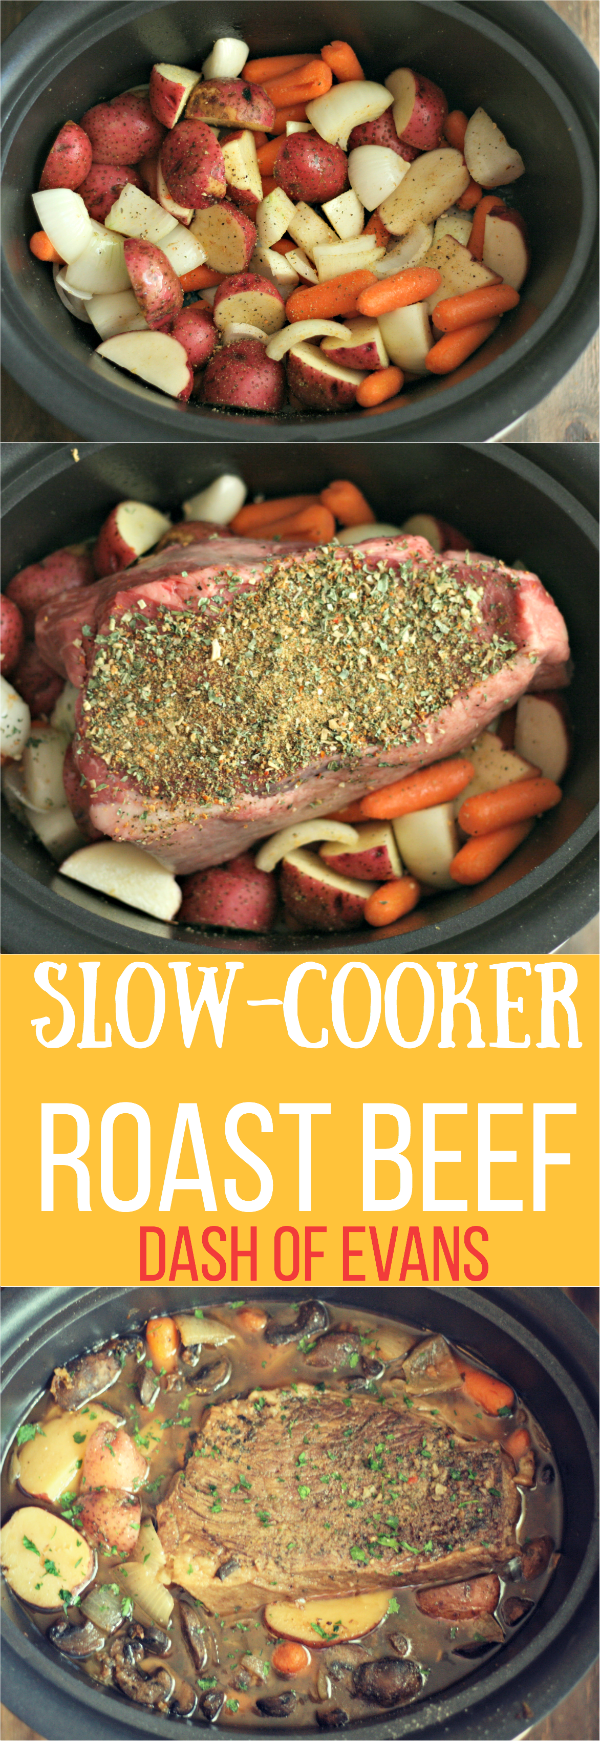 Comfort Food Classic: Slow-Cooker Roast Beef - Dash Of Evans #slowcookerrecipes